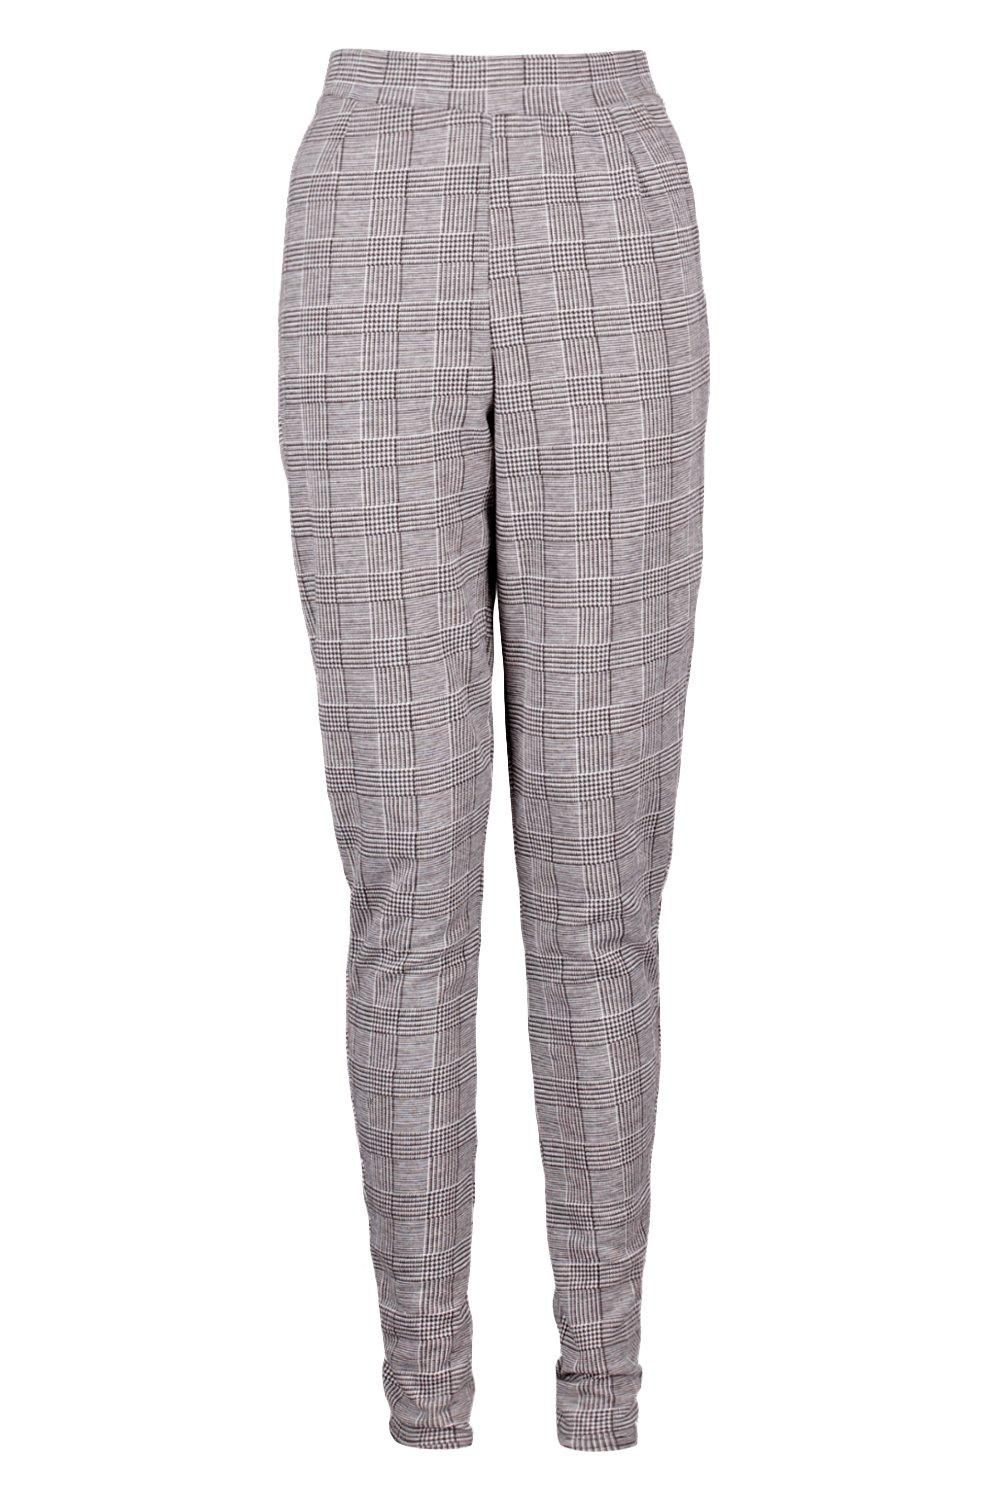 Trousers Tailored Tall Check black Tall Check zqfI6B